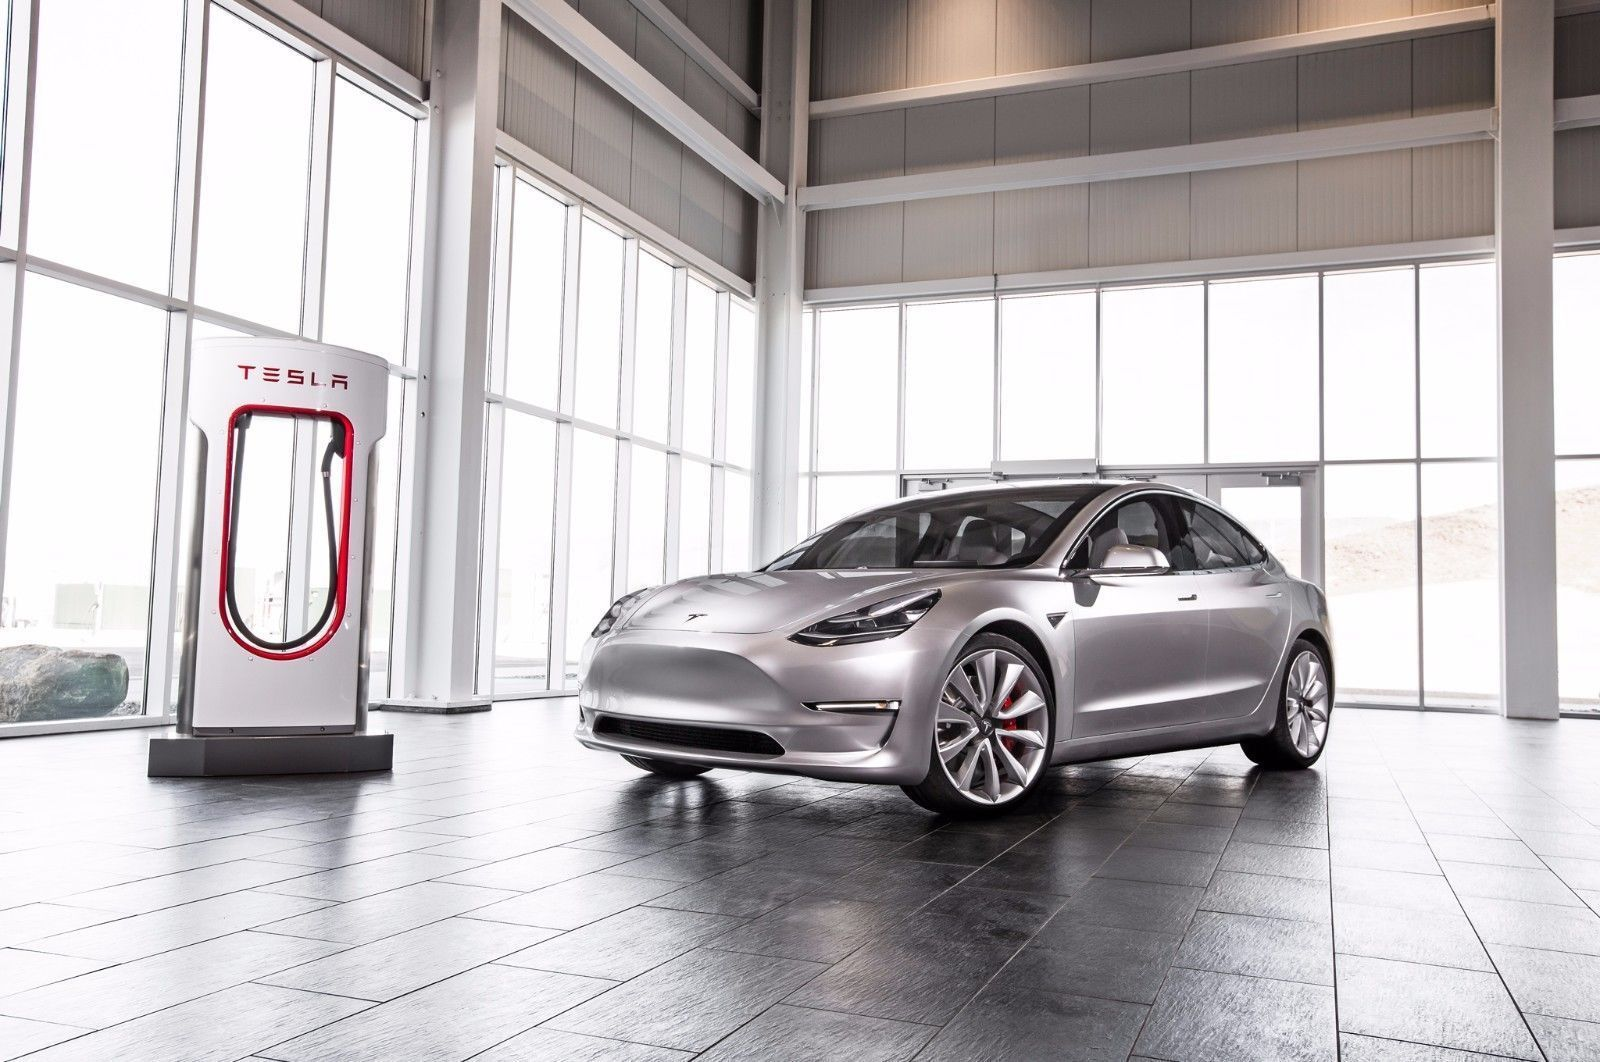 2017 TESLA MODEL 3 AND CHARGING STATION POSTER | 24 x 36 ...